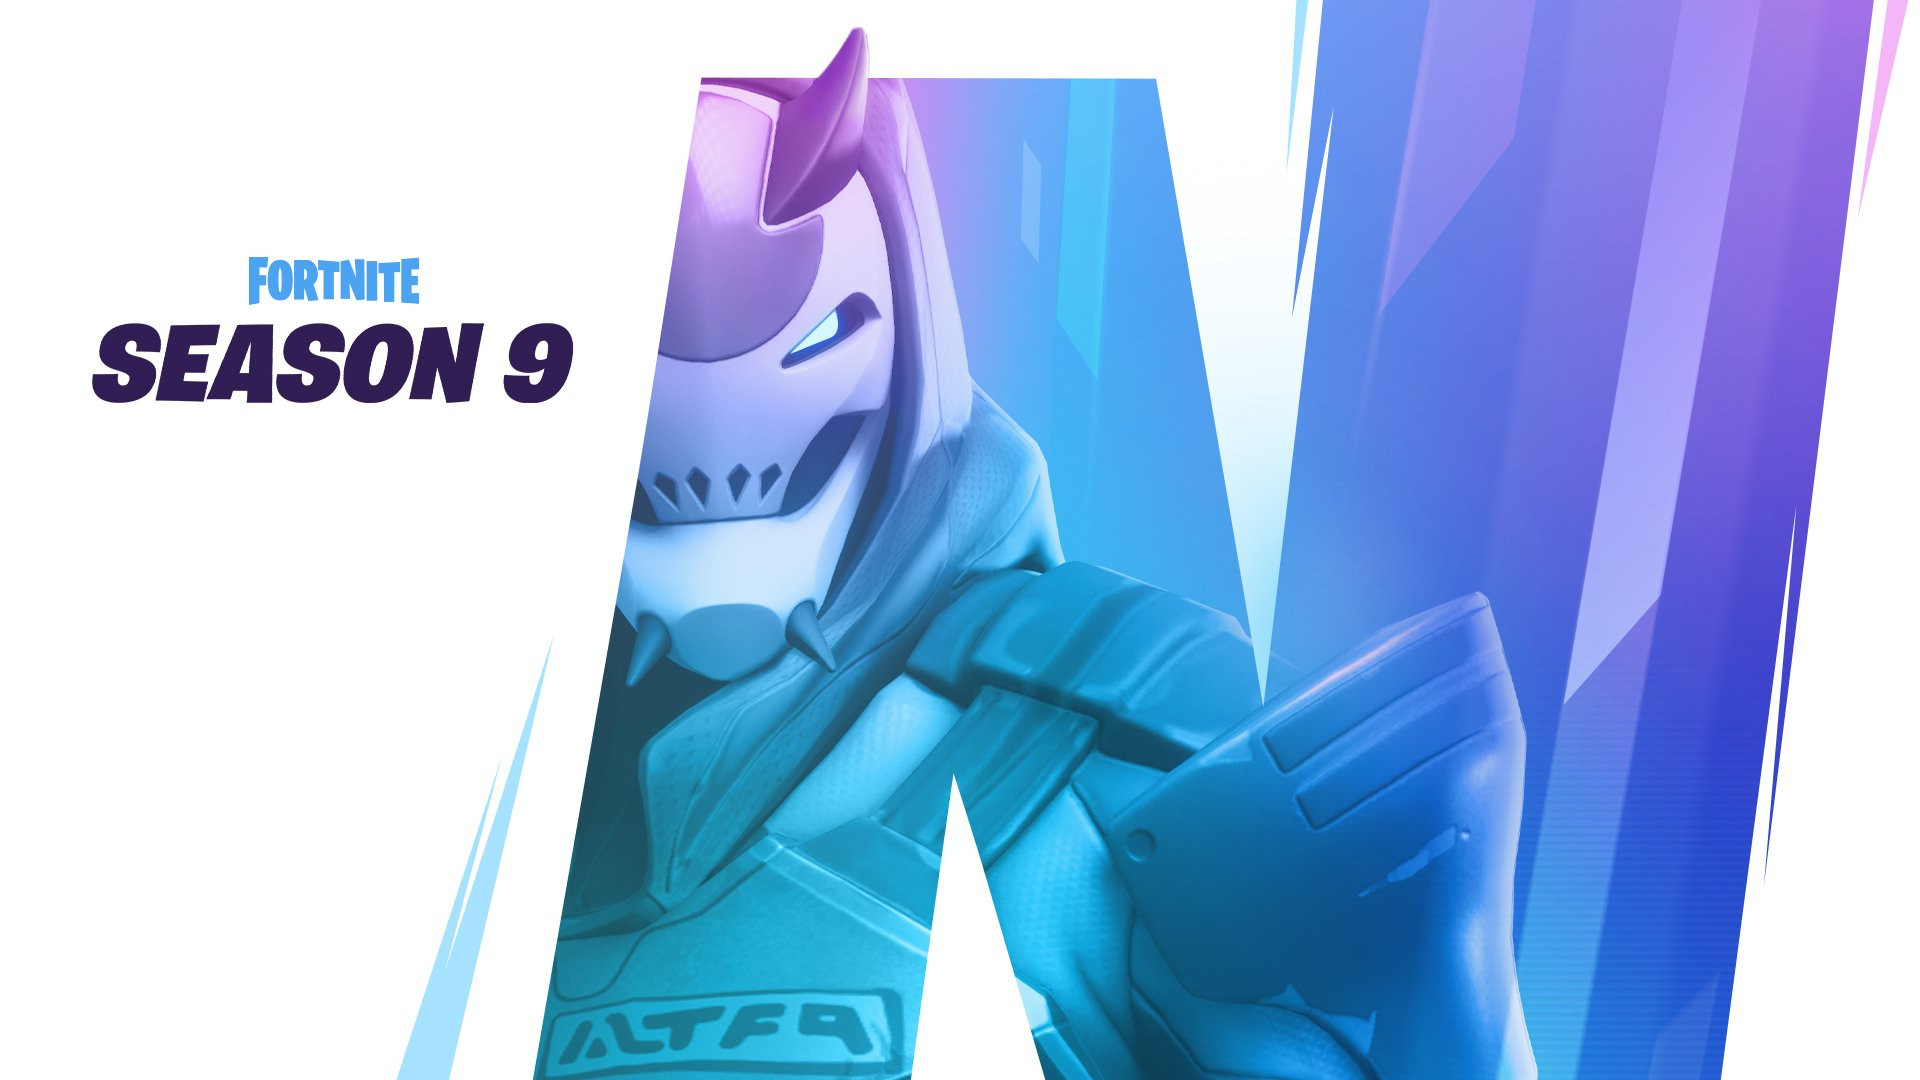 First Teases for Season 9 of Fortnite